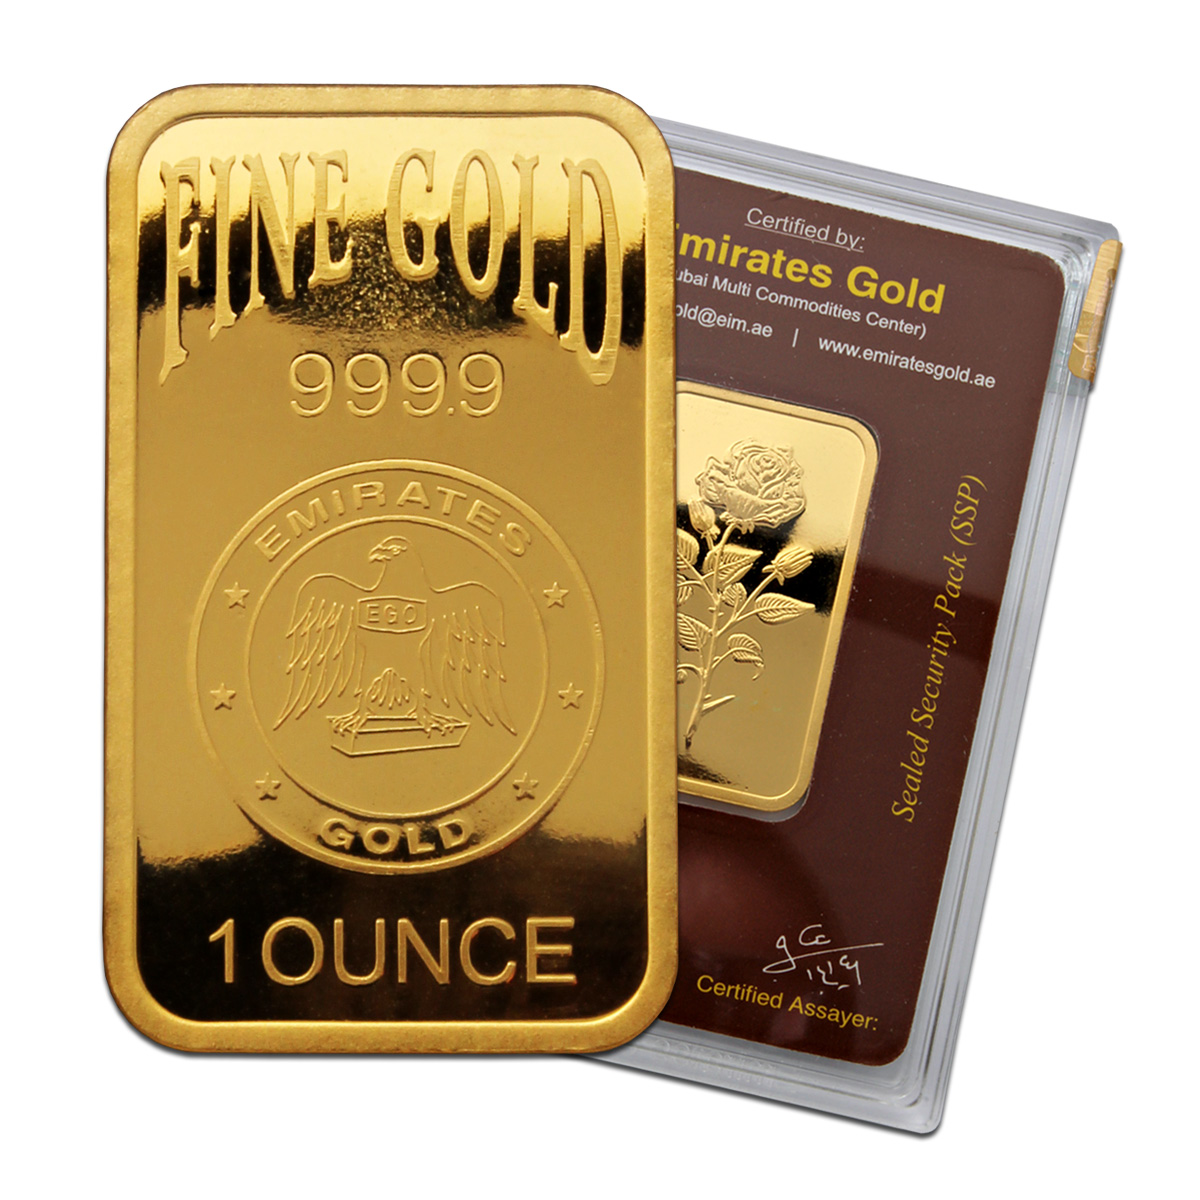 Emirates Gold 1 Ounce Gold Bar Emirates Gold Bullion